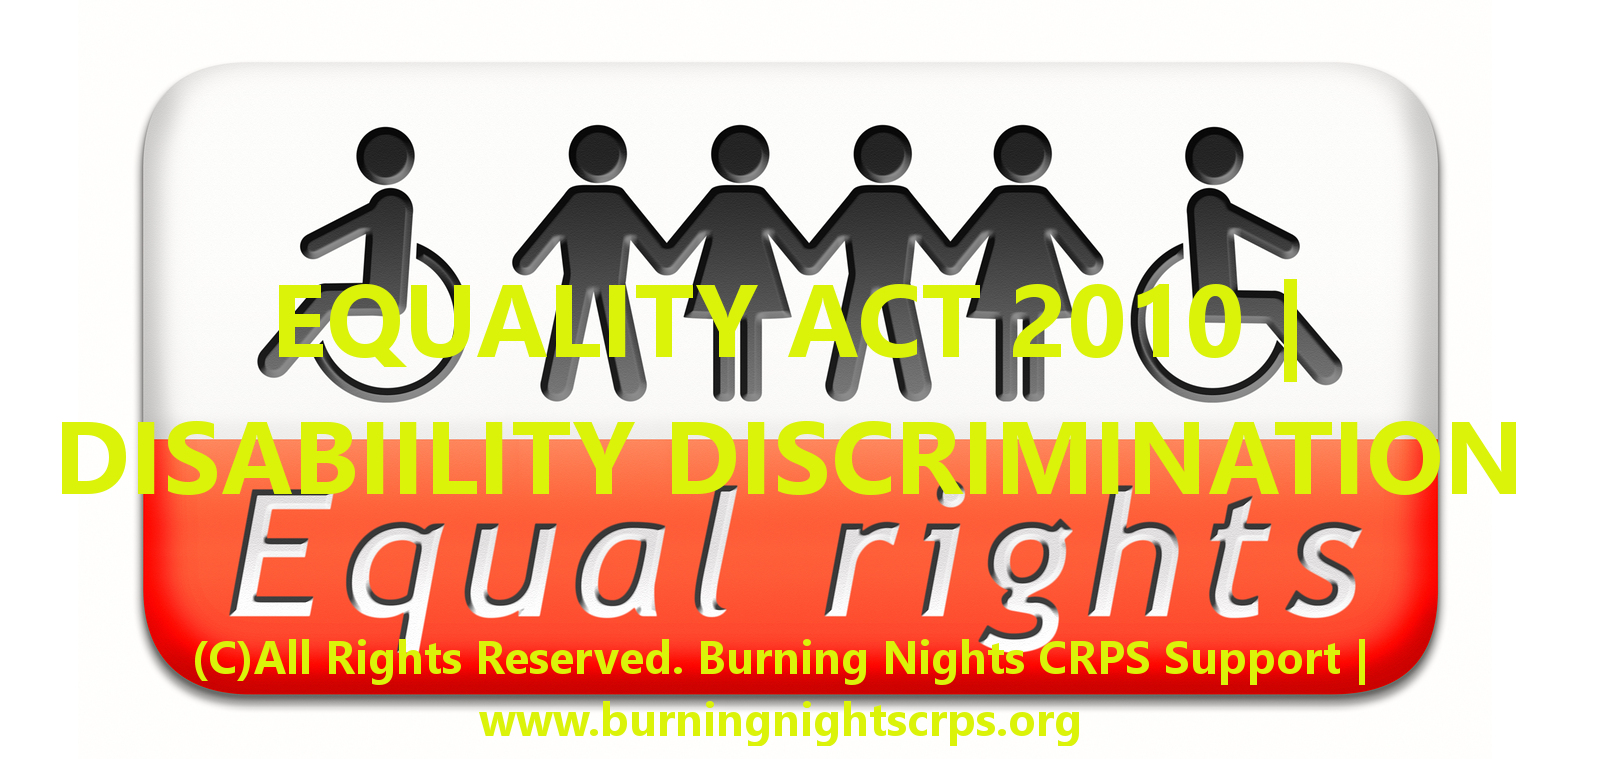 equality act The equality act will cover the areas of employment, education, housing, public accommodations, jury service, federal funding and credit lawmakers to introduce historic lgbt non-discrimination.